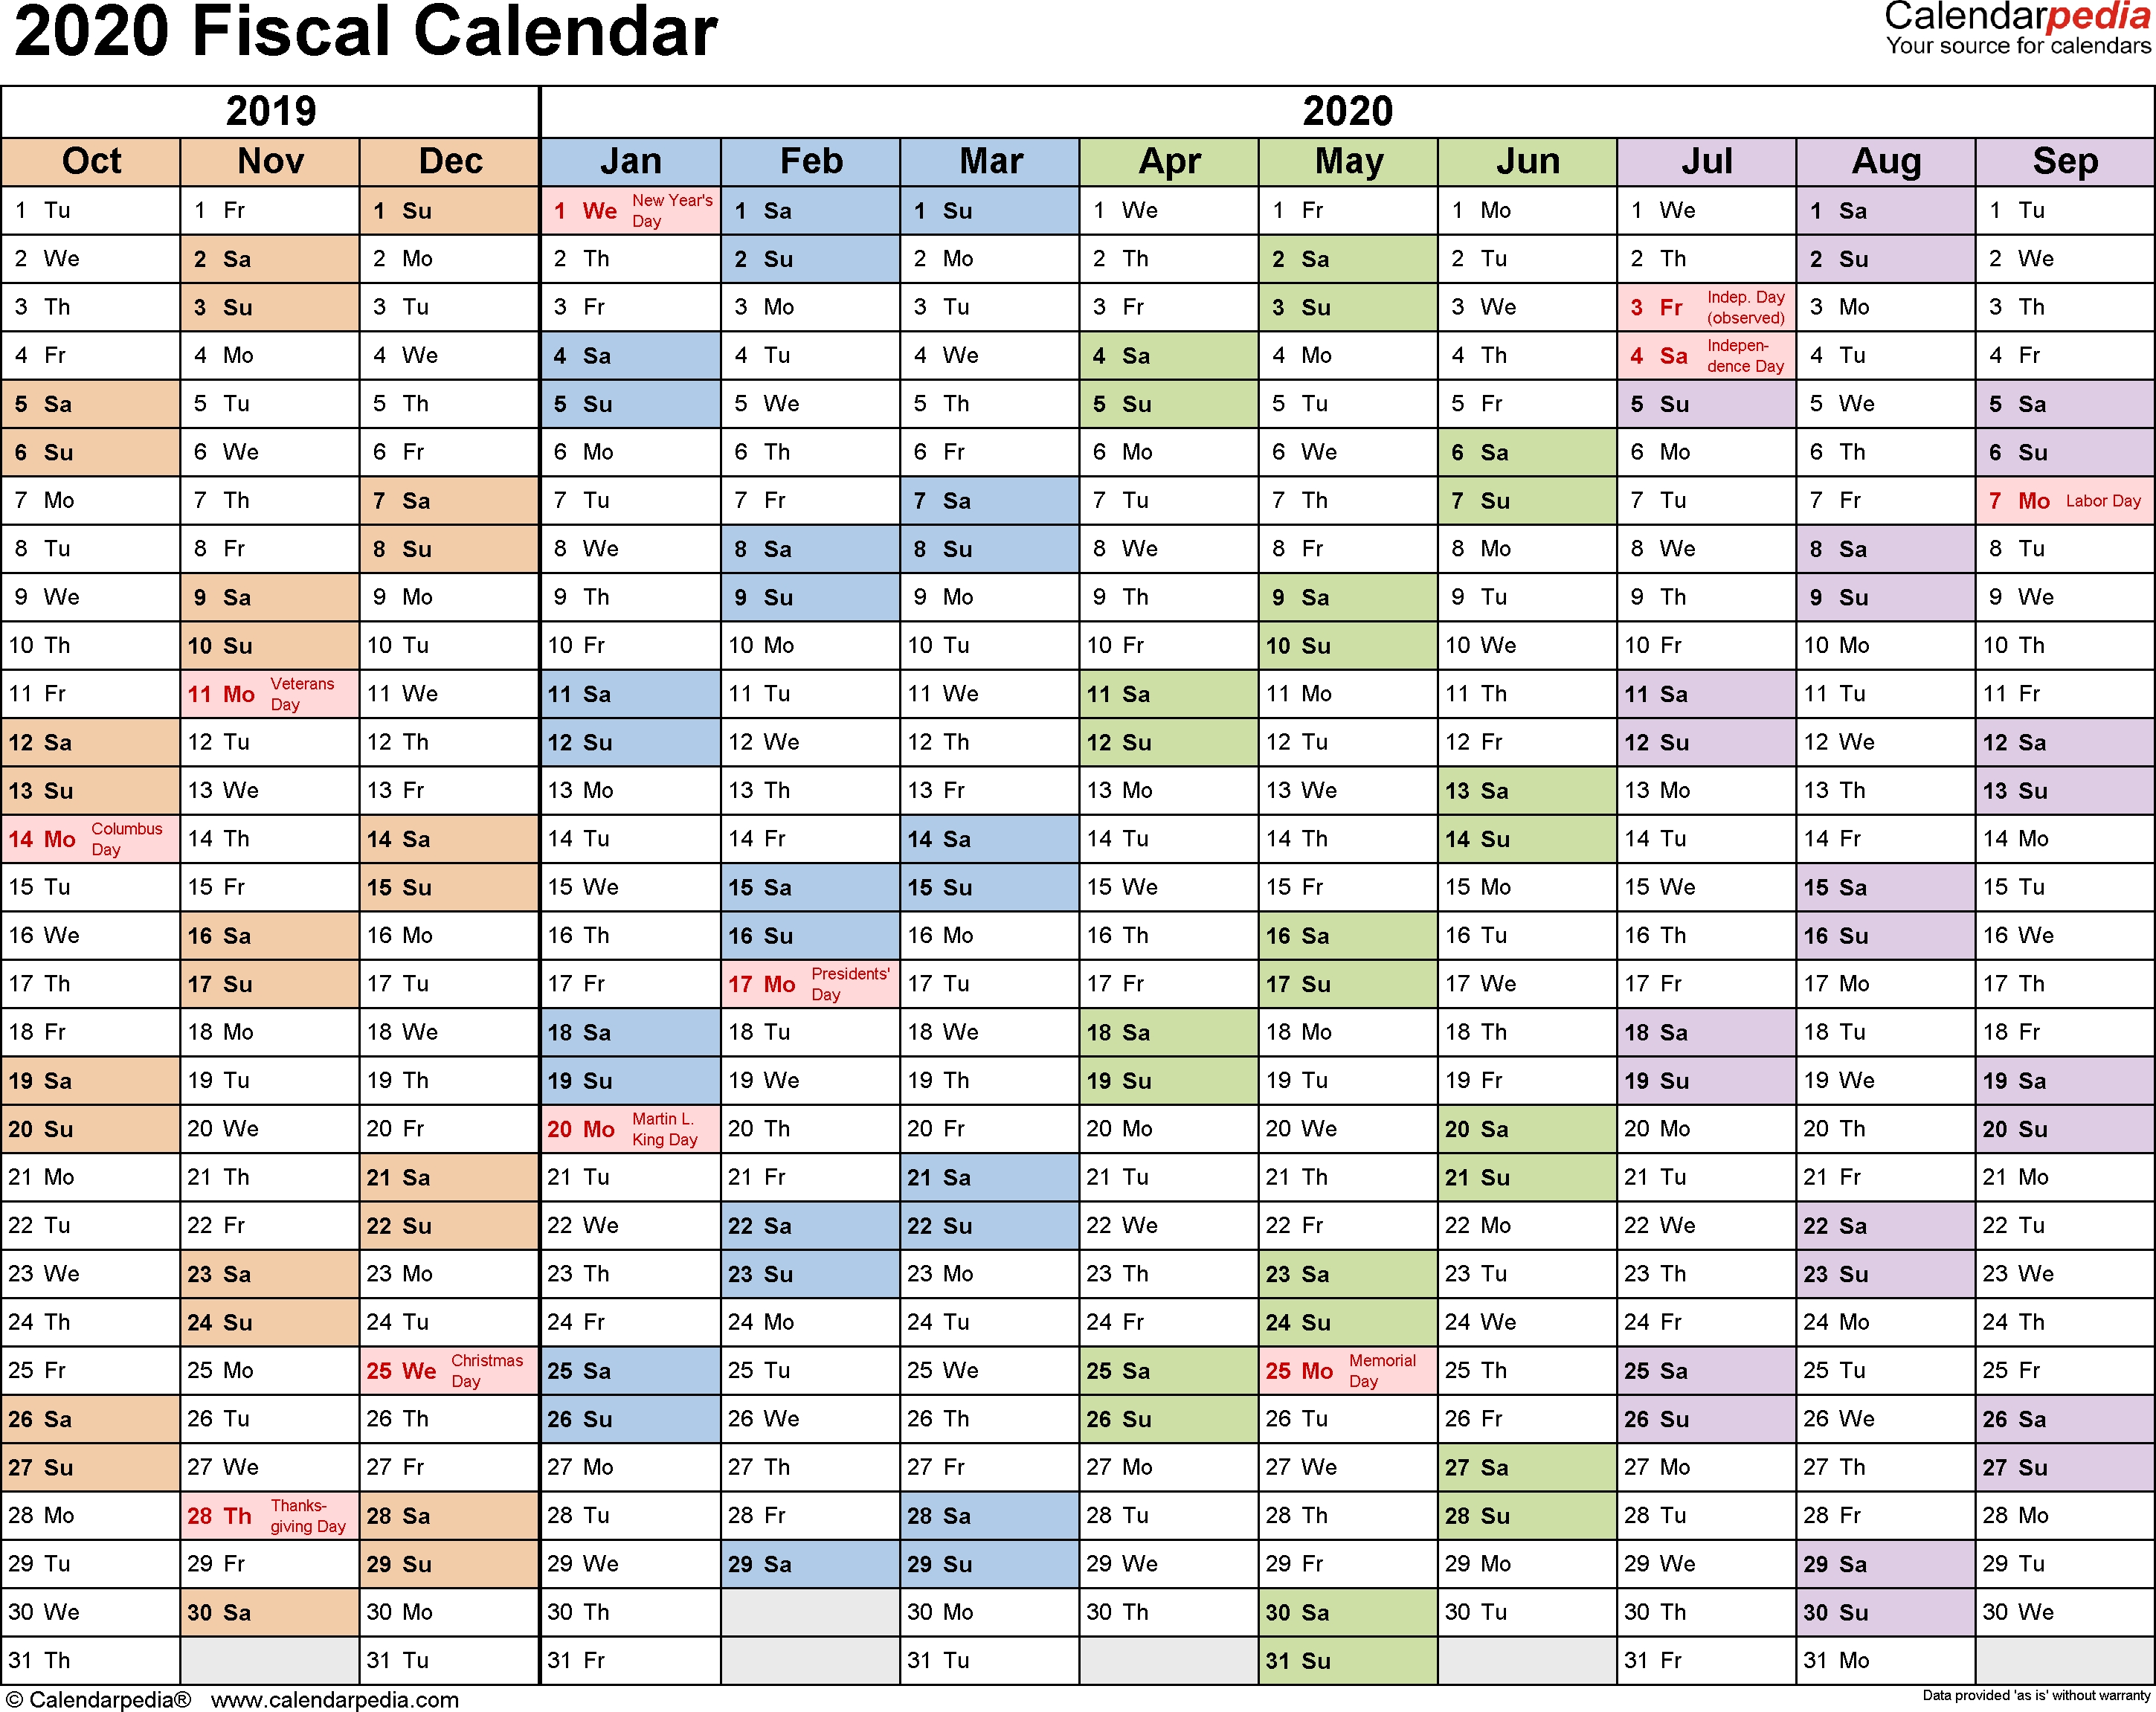 Fiscal Calendars 2020 As Free Printable Pdf Templates  Official Navy Calendar Template With Julian Dates 2020